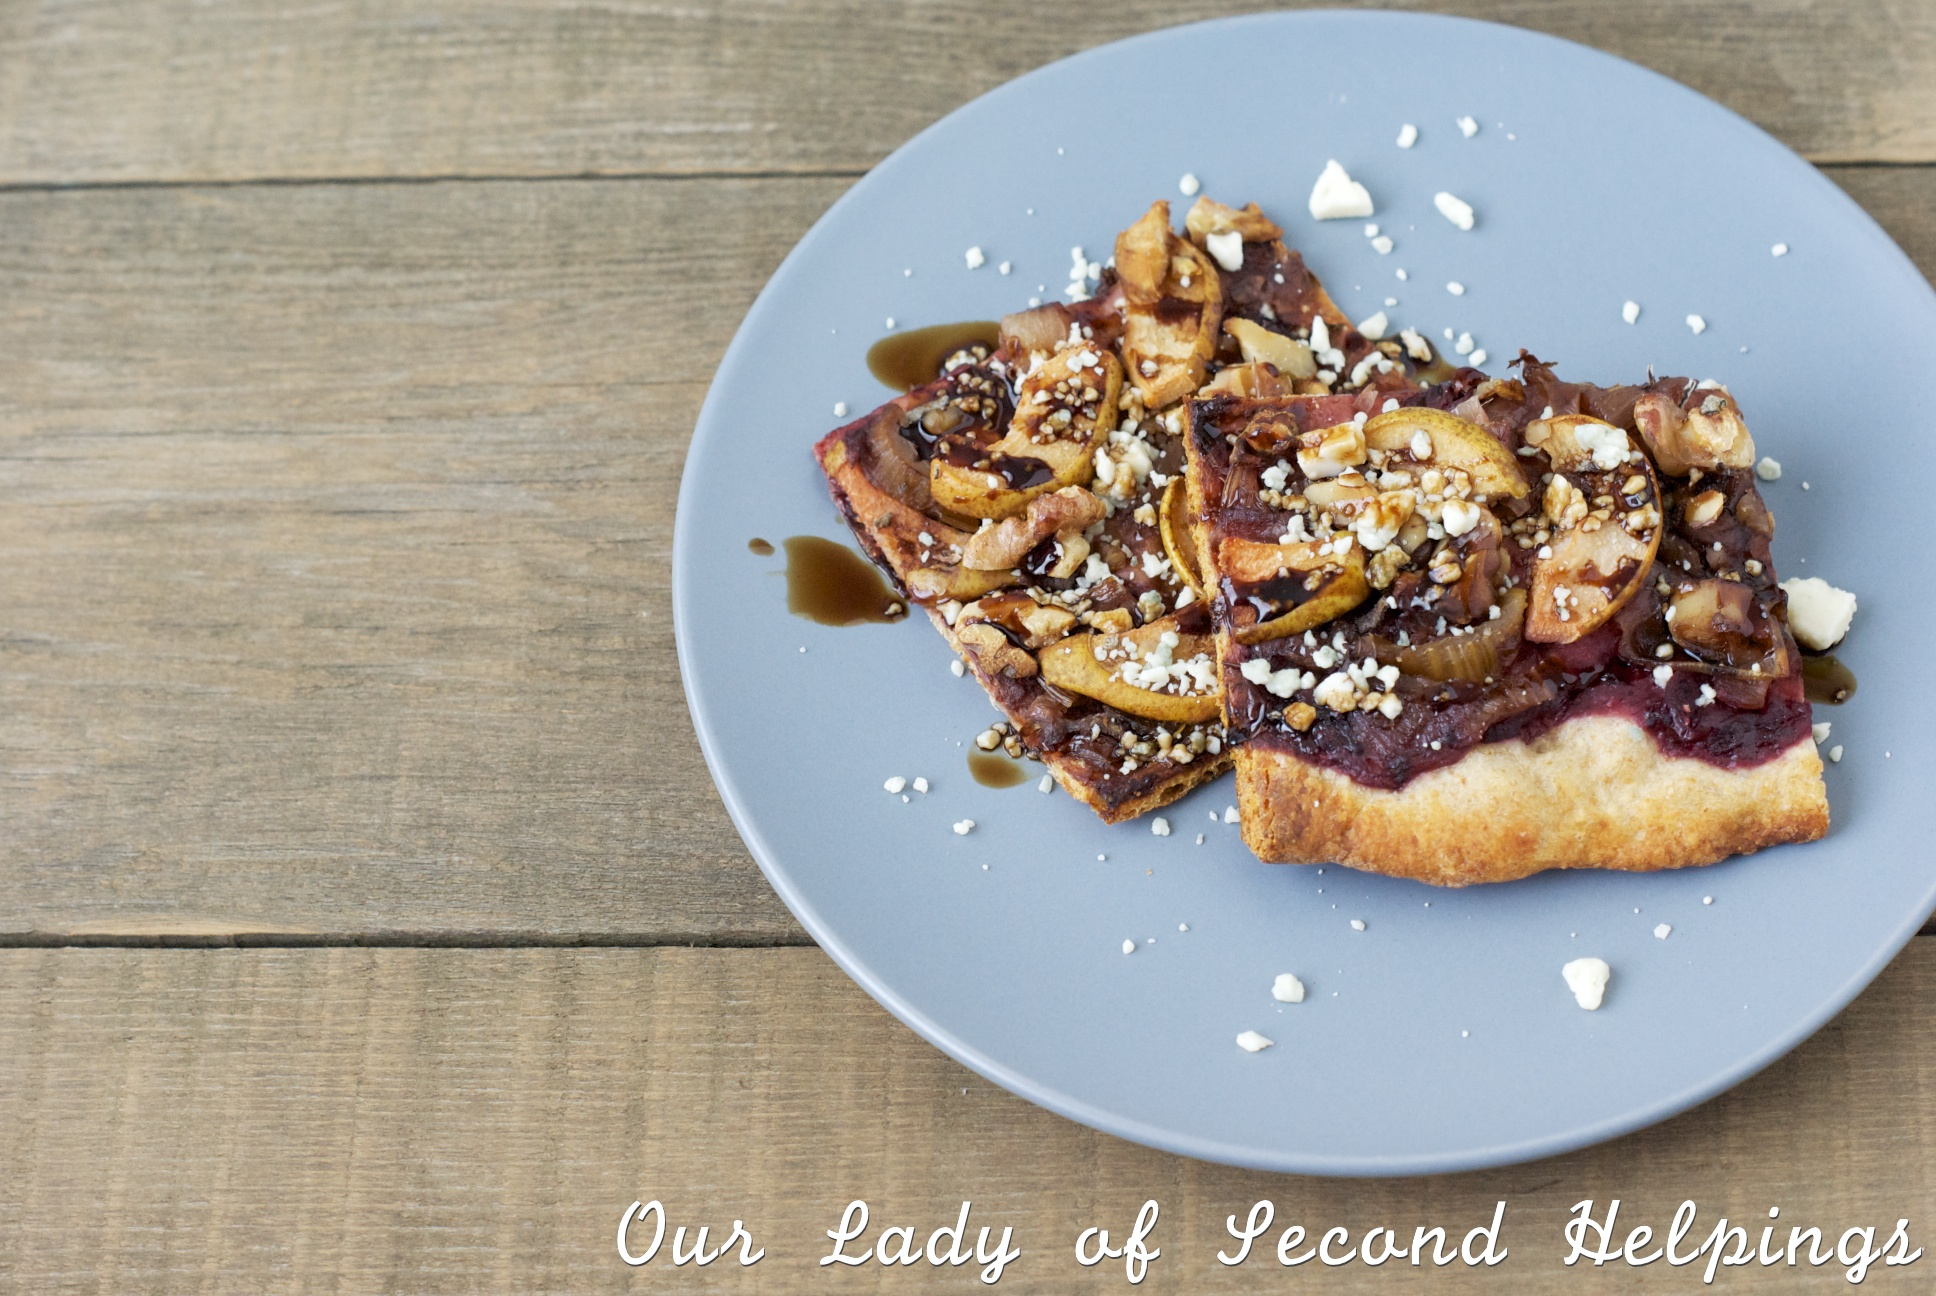 Savory Autumn Pear & Walnut Pizza